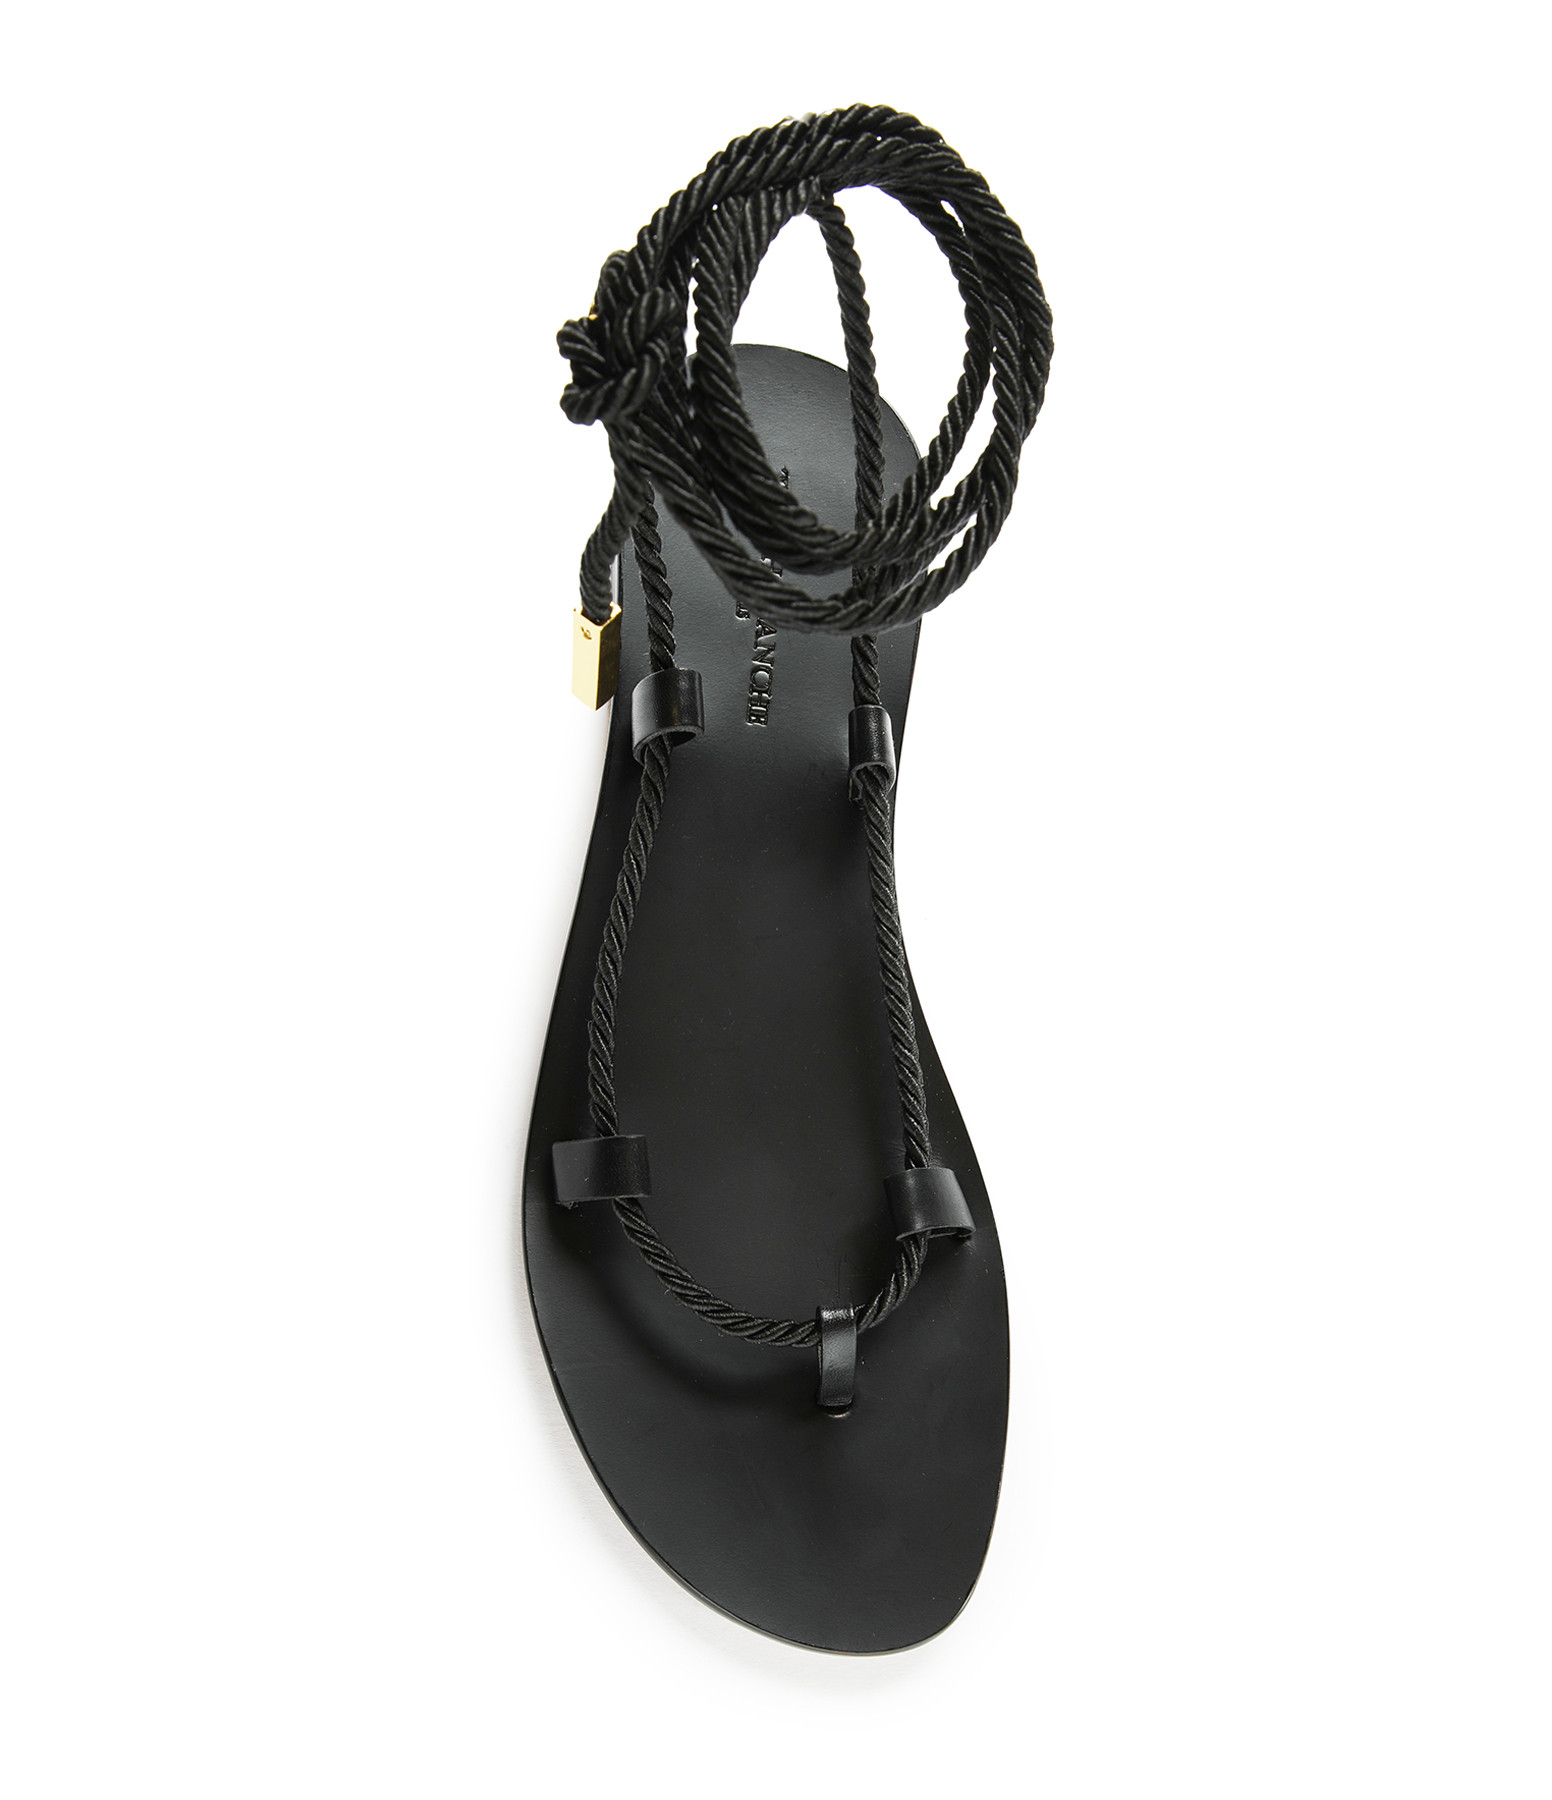 Black Sandals with one lace